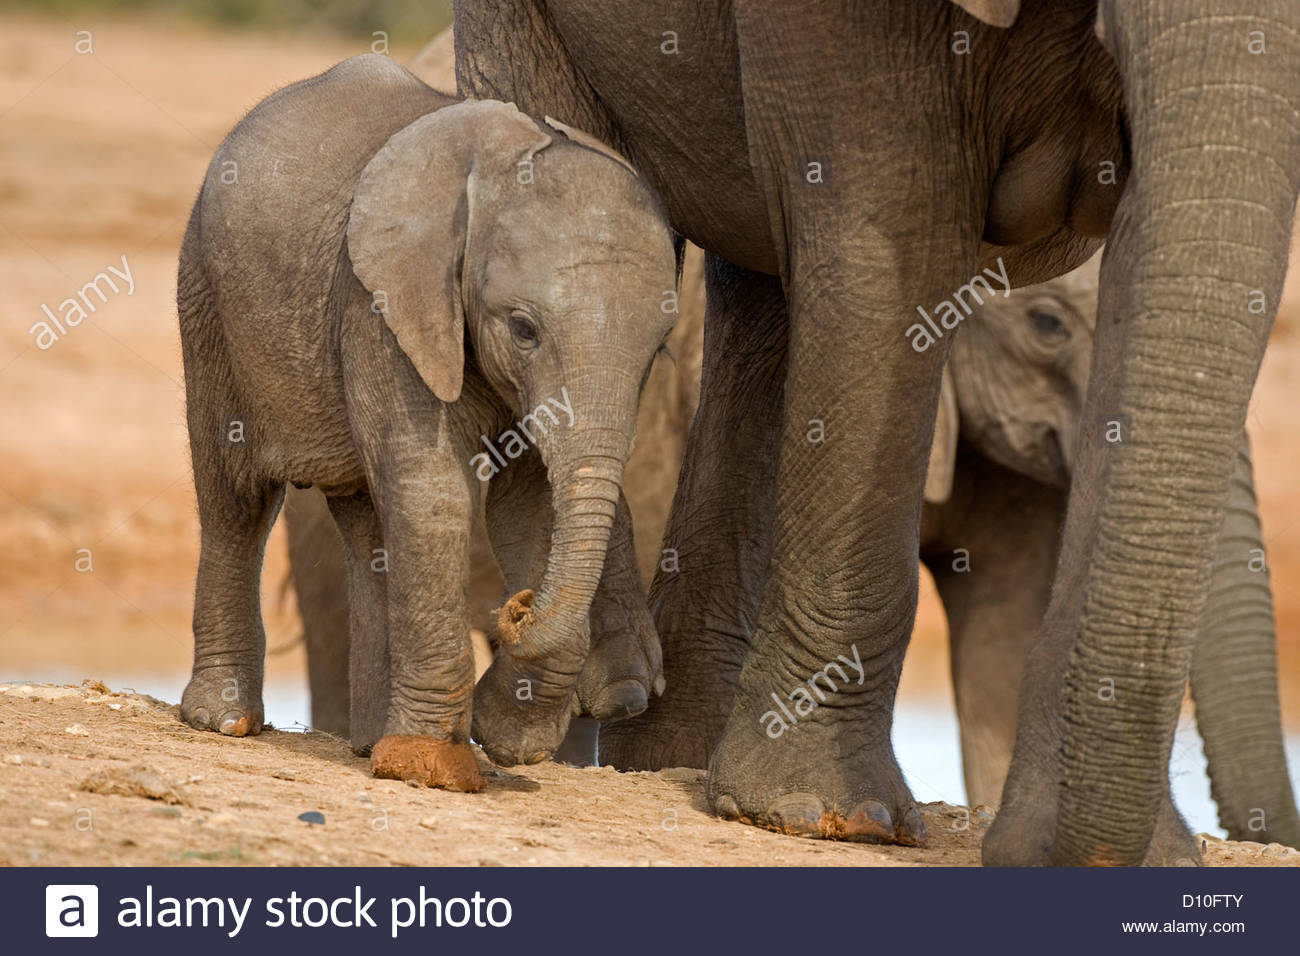 African Elephant (Loxodonta africana) calf following herd, Addo Elephant National Park, South Africa - Stock Image